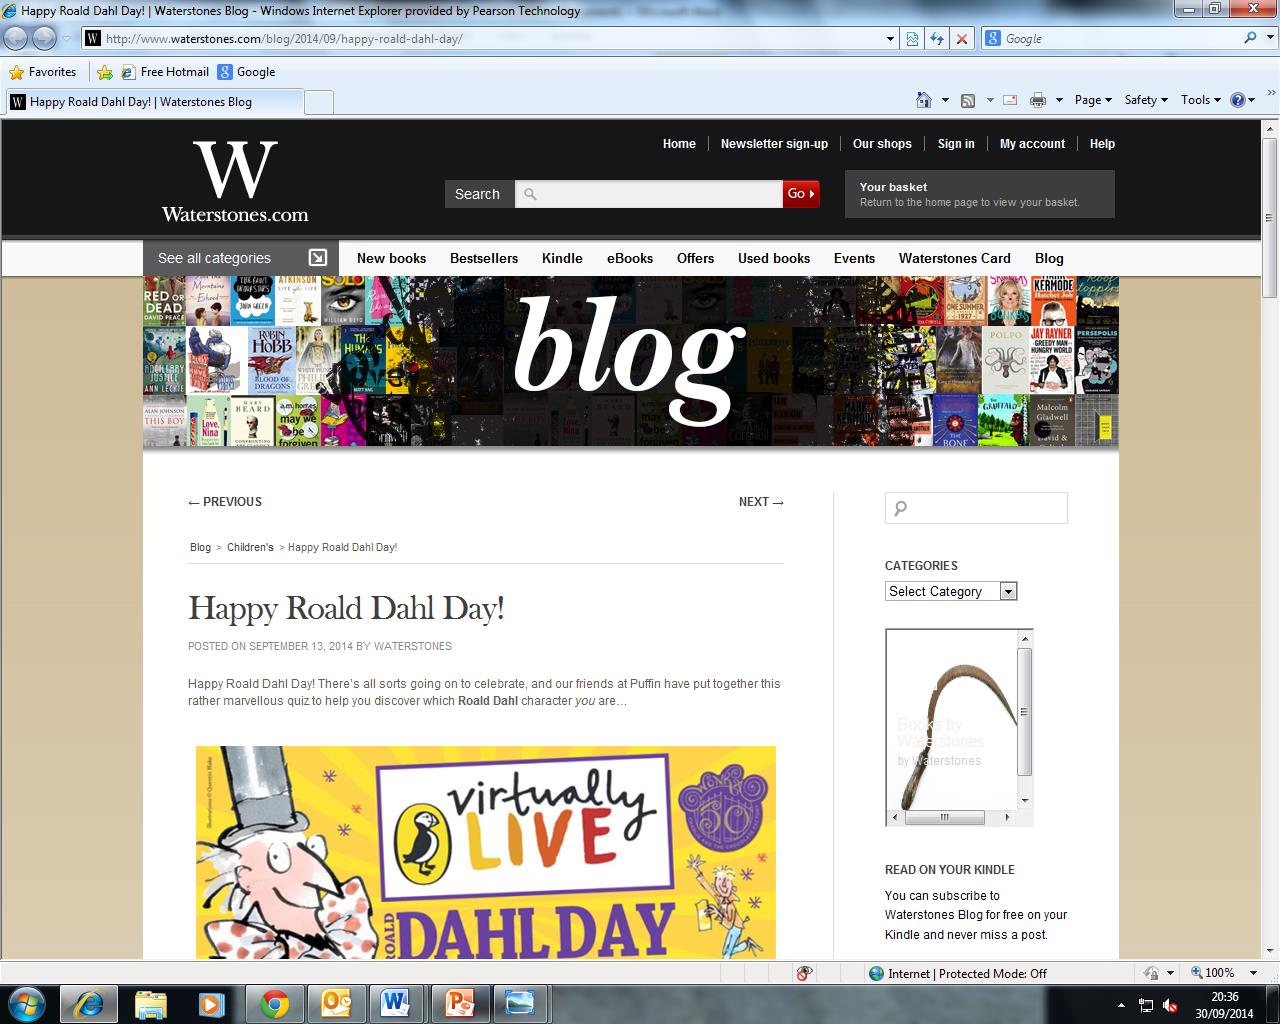 Roald Dahl Day Waterstones blog post